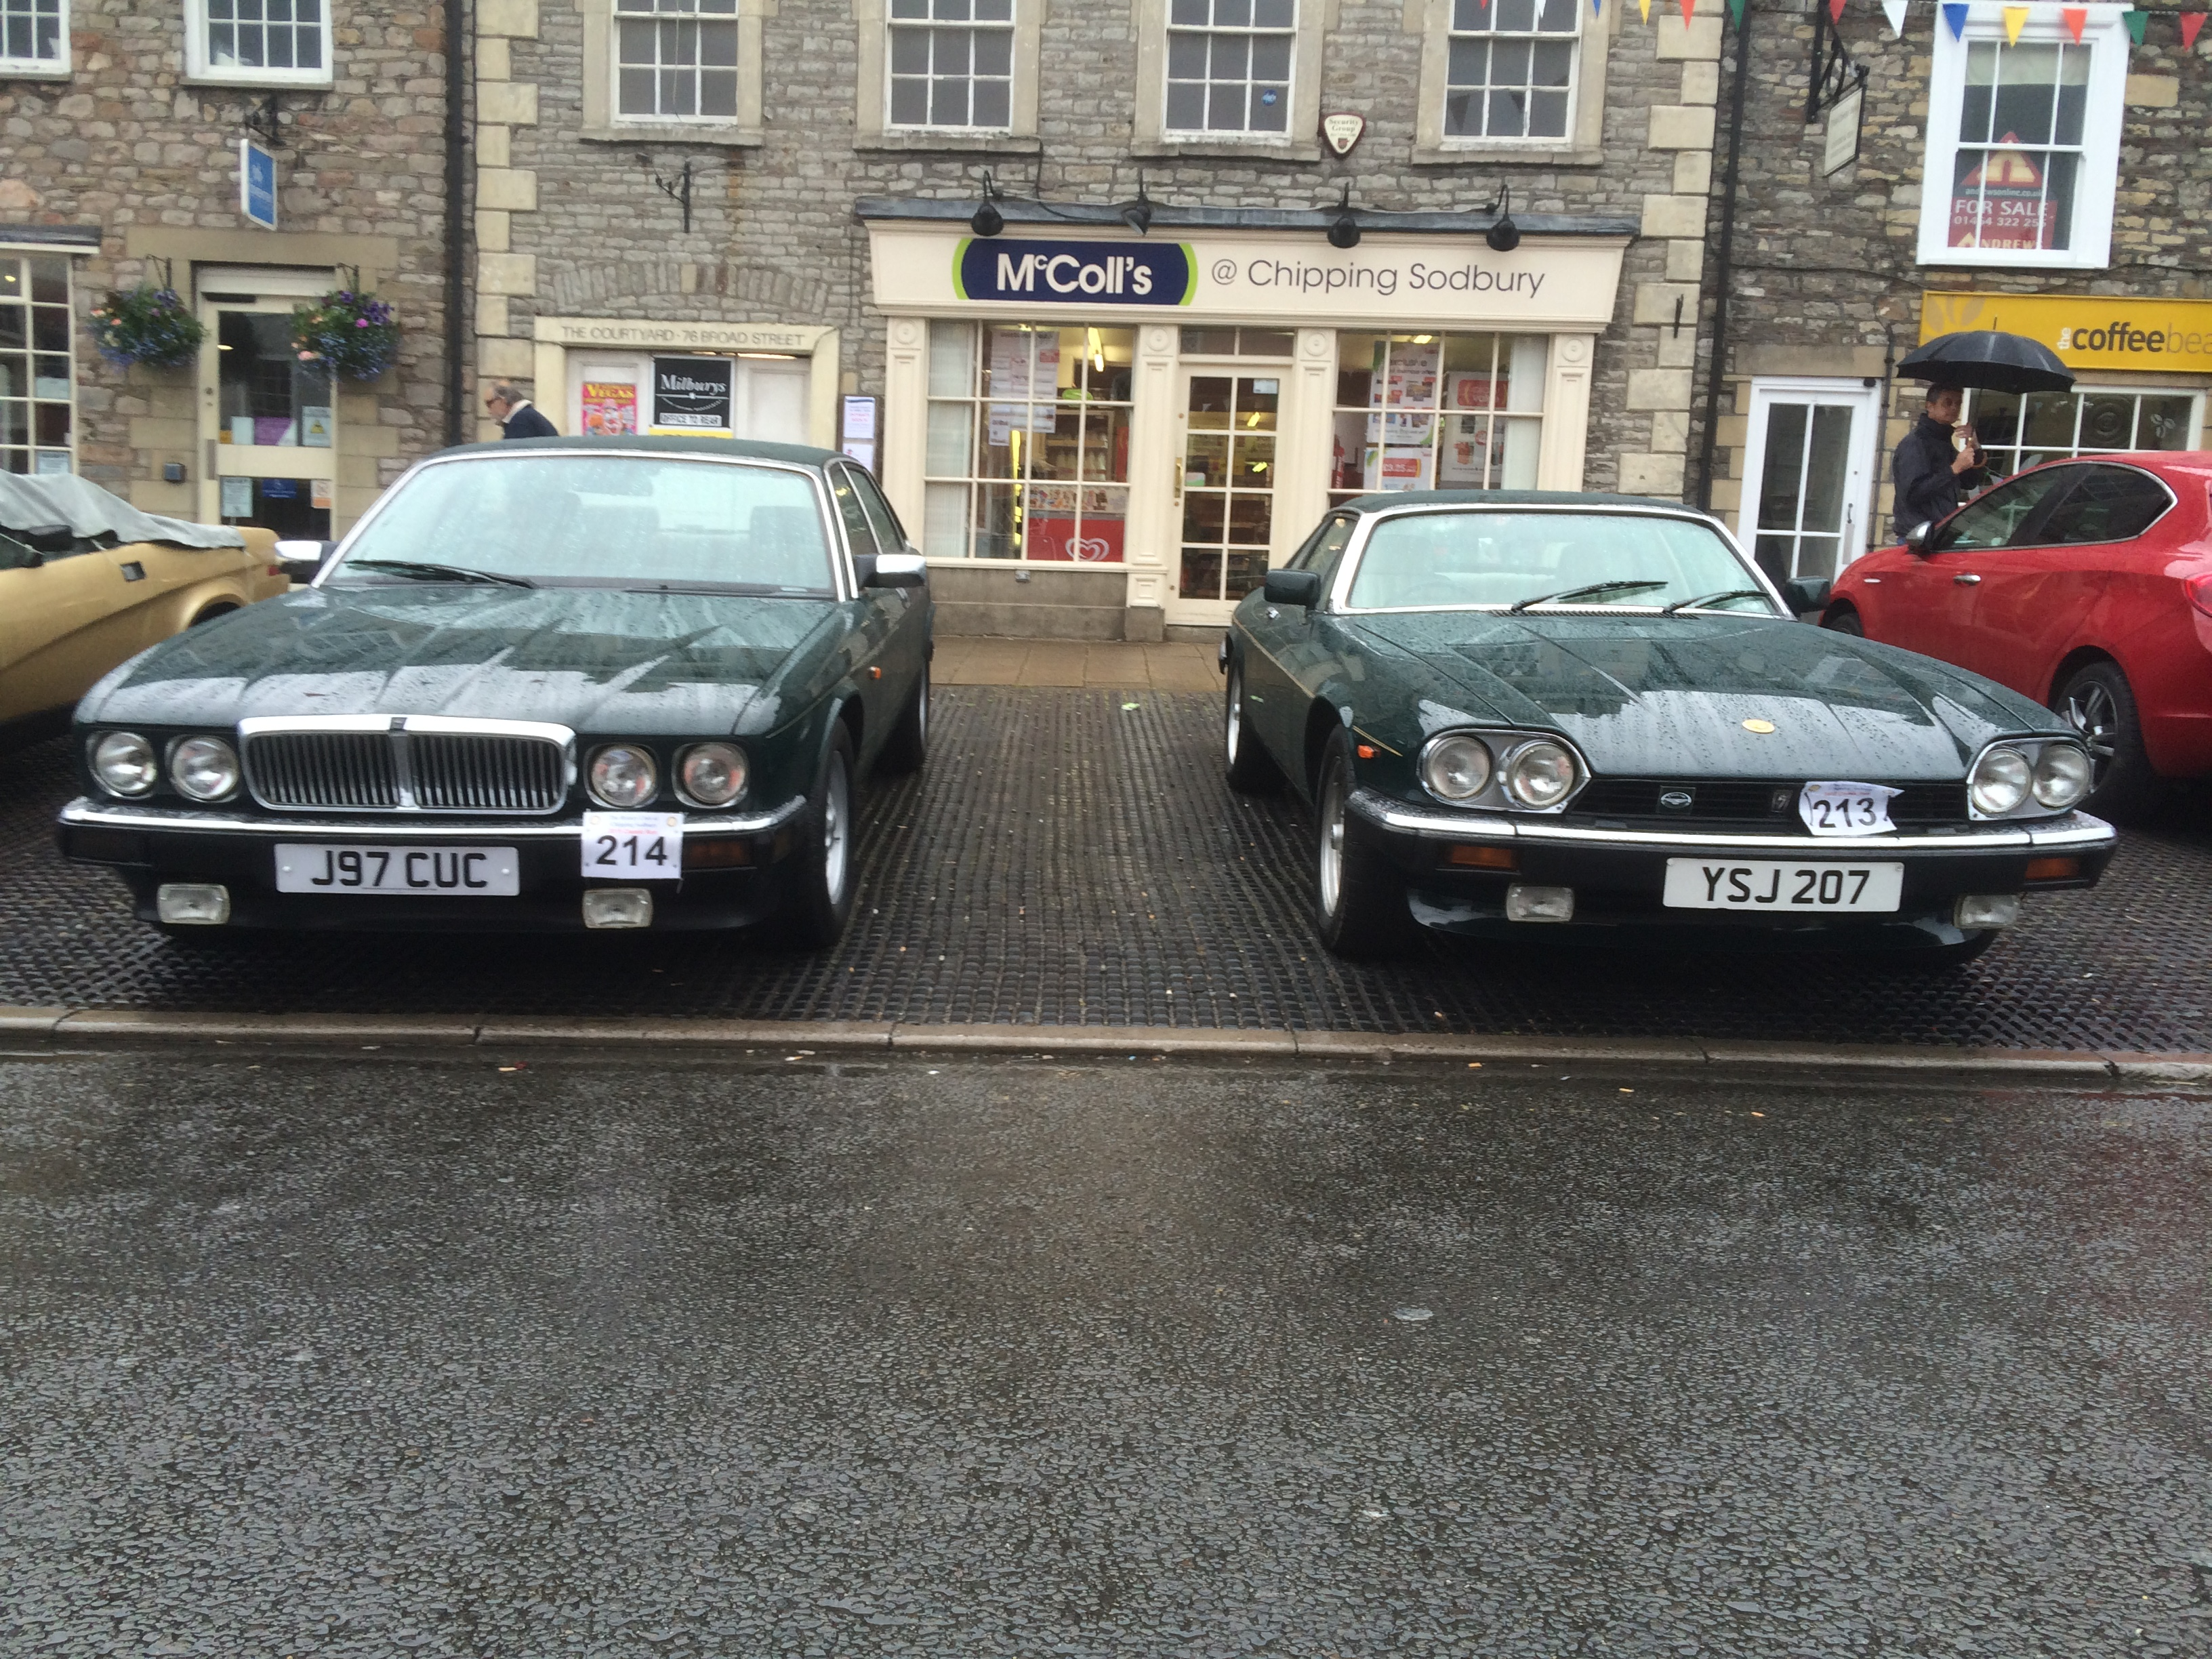 Last of the original XJ and XJS models